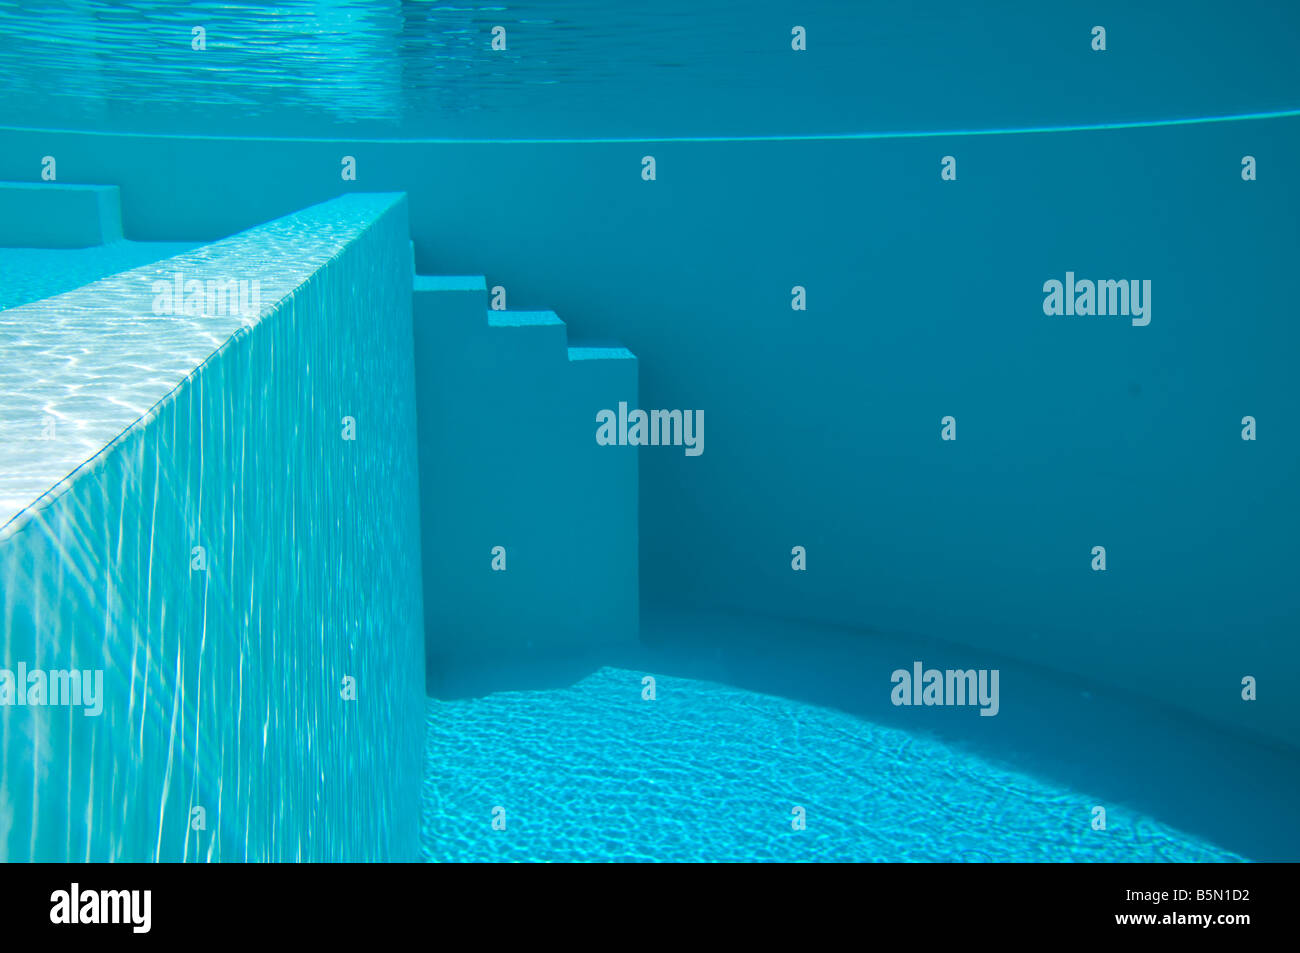 A swimming pool seen underwater. - Stock Image